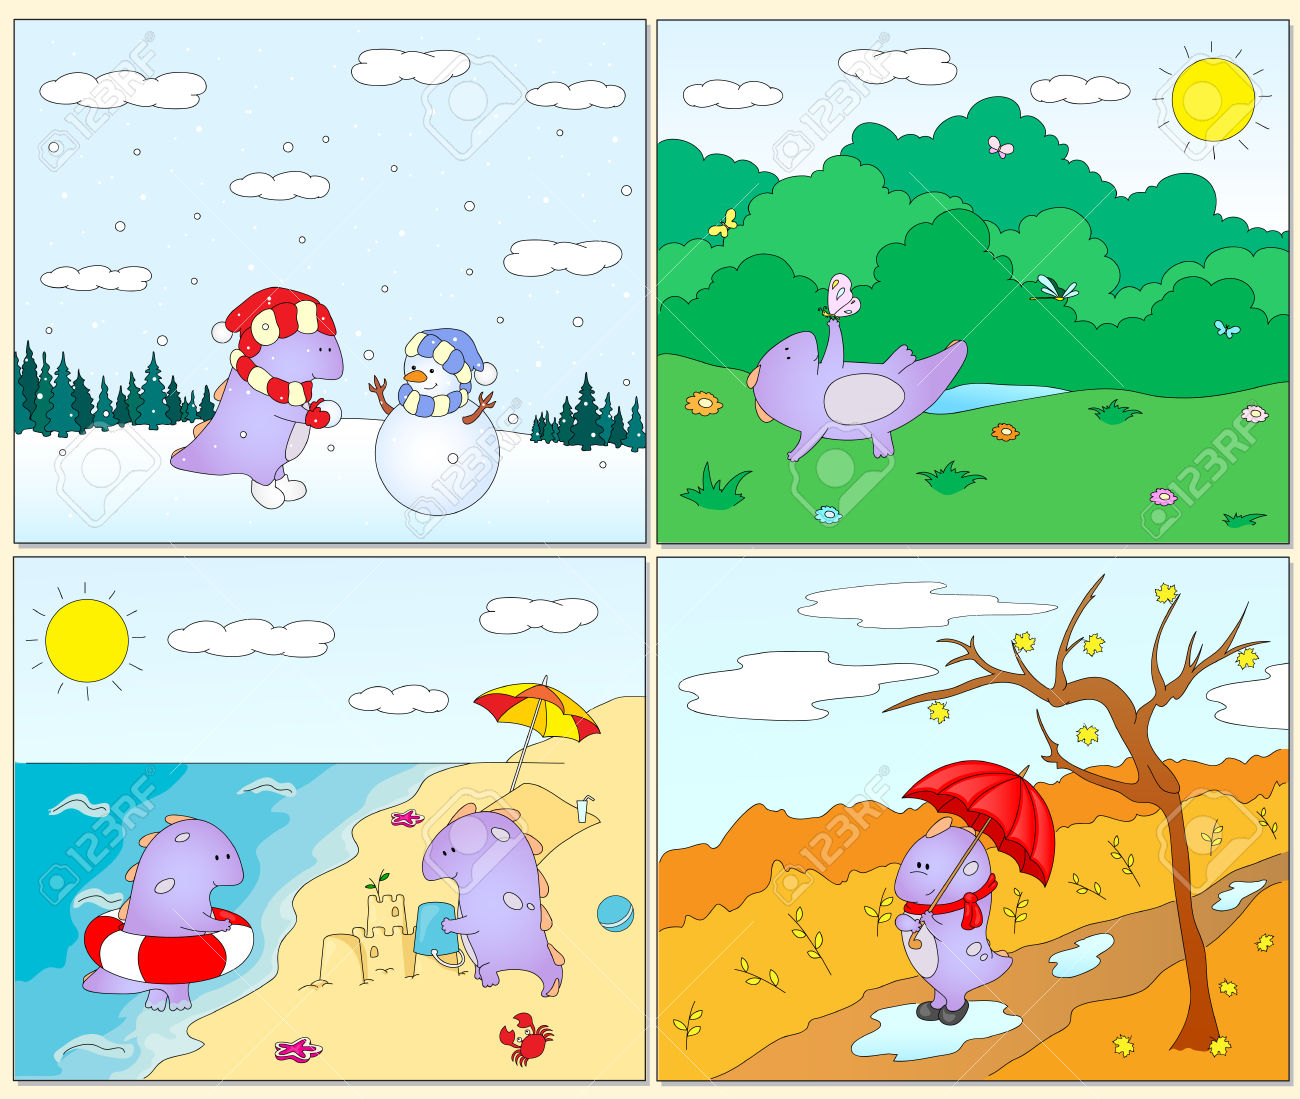 Four seasons clipart 20 free Cliparts | Download images on ...